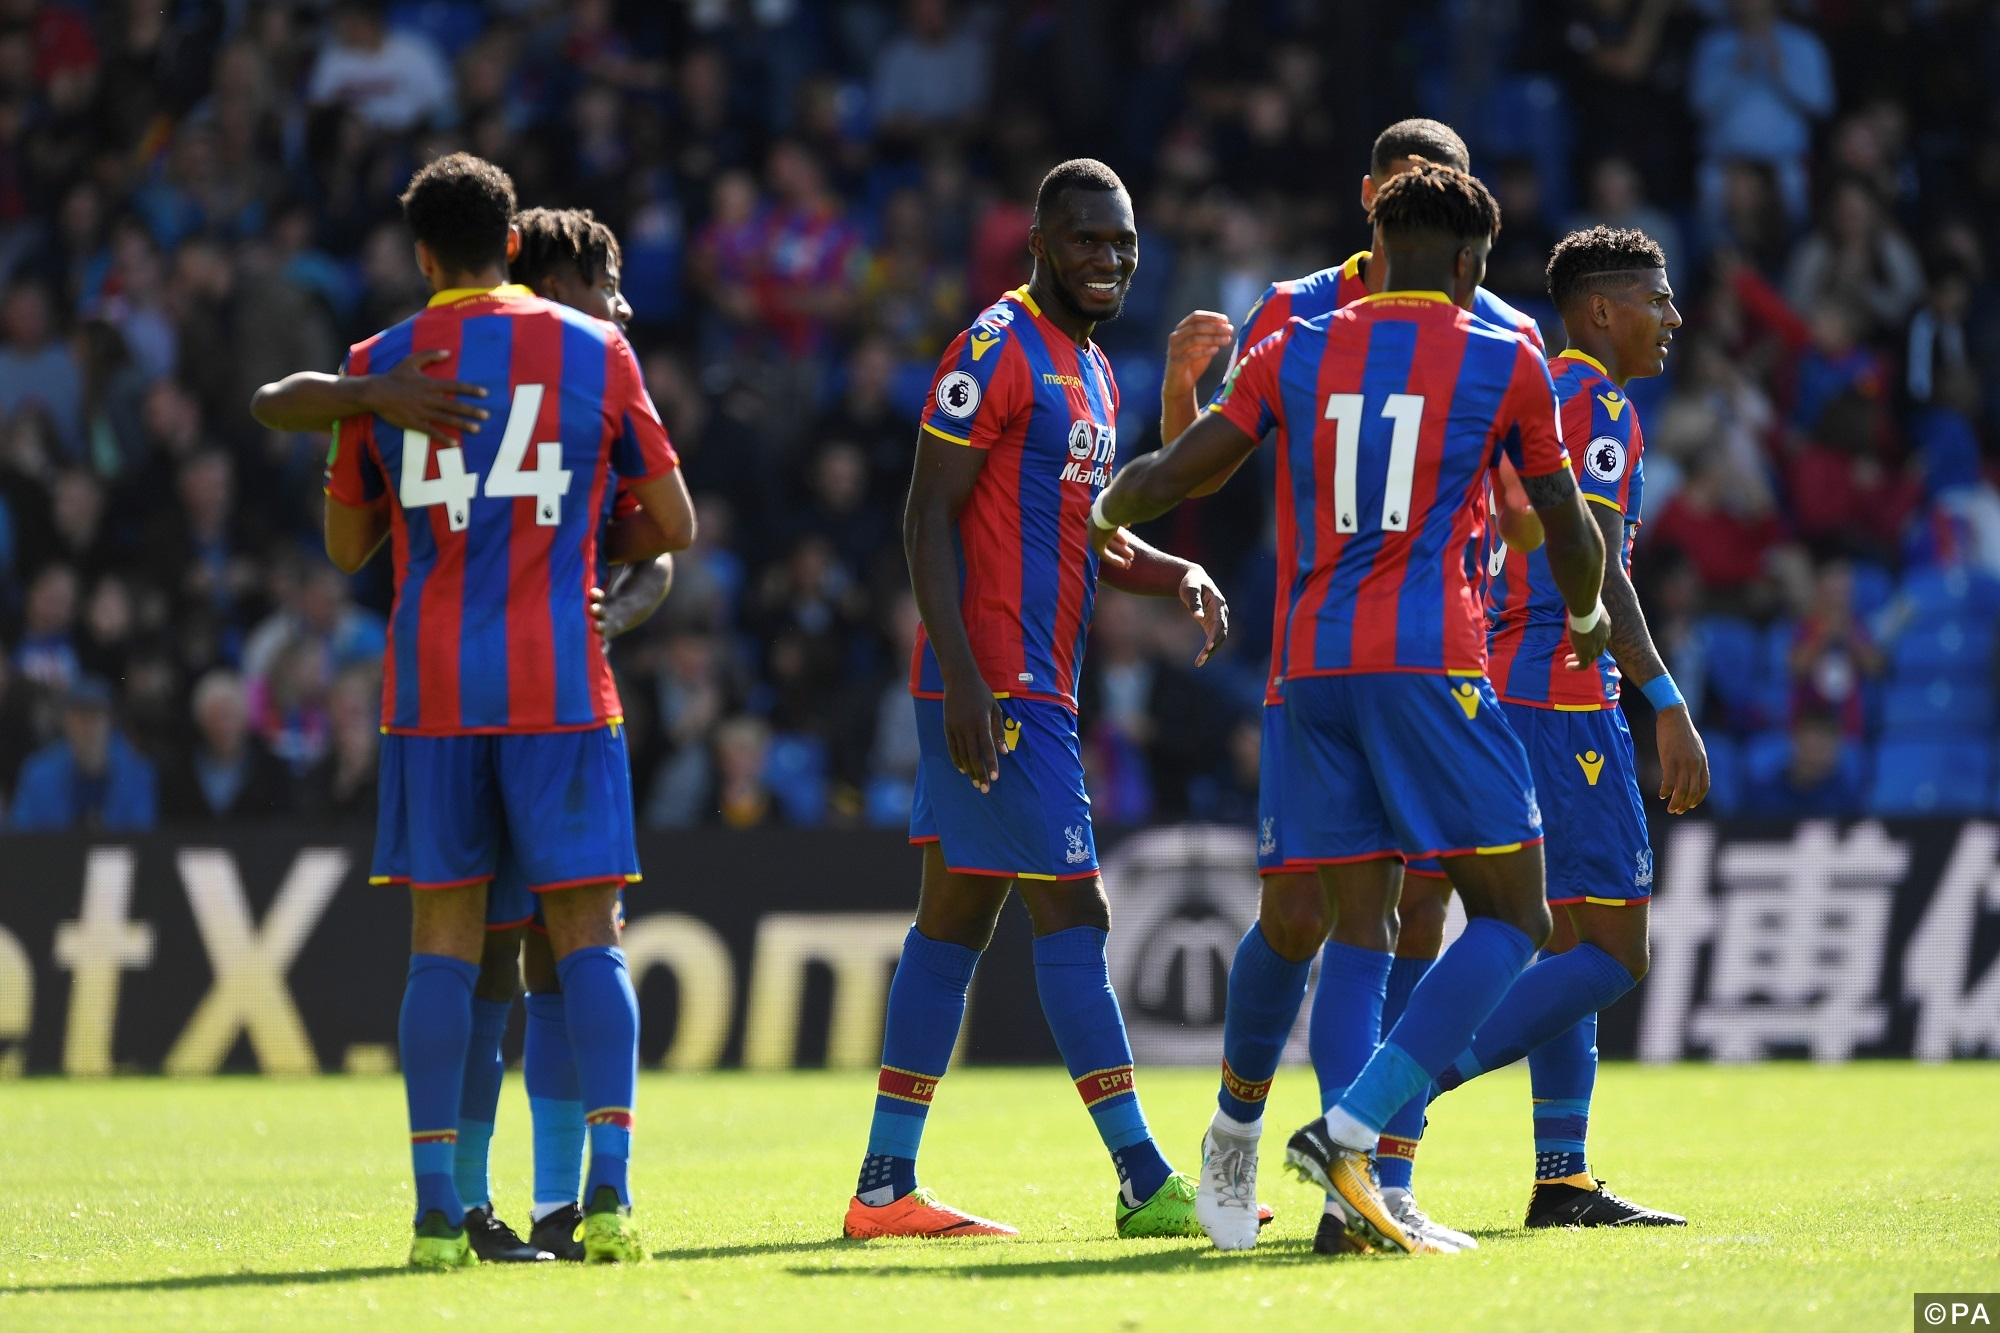 Crystal Palace vs Huddersfield predictions, free betting tips and match preview